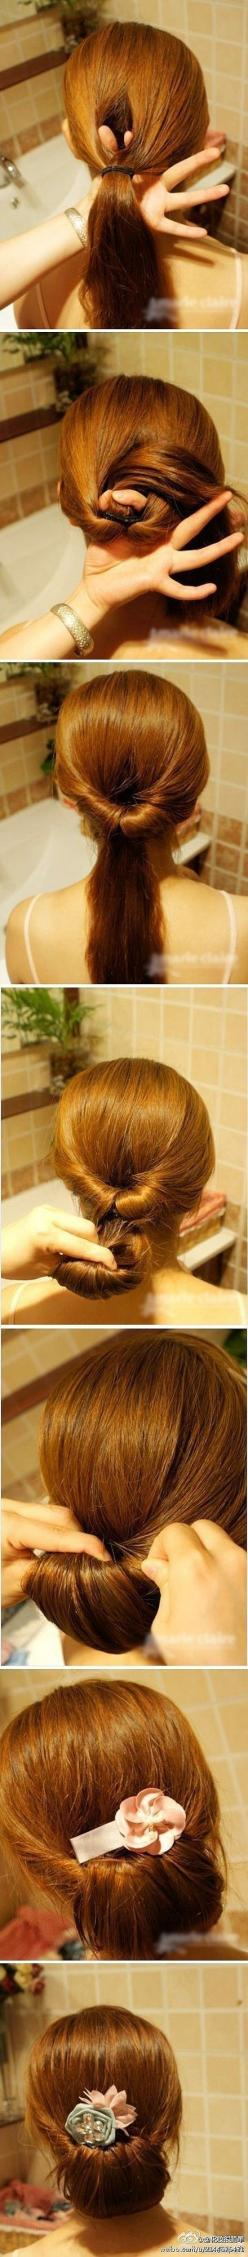 easy!: Hair Ideas, Hairstyles, Hairdos, Hair Styles, Hair Tutorial, Makeup, Hair Do, Updos, Easy Updo